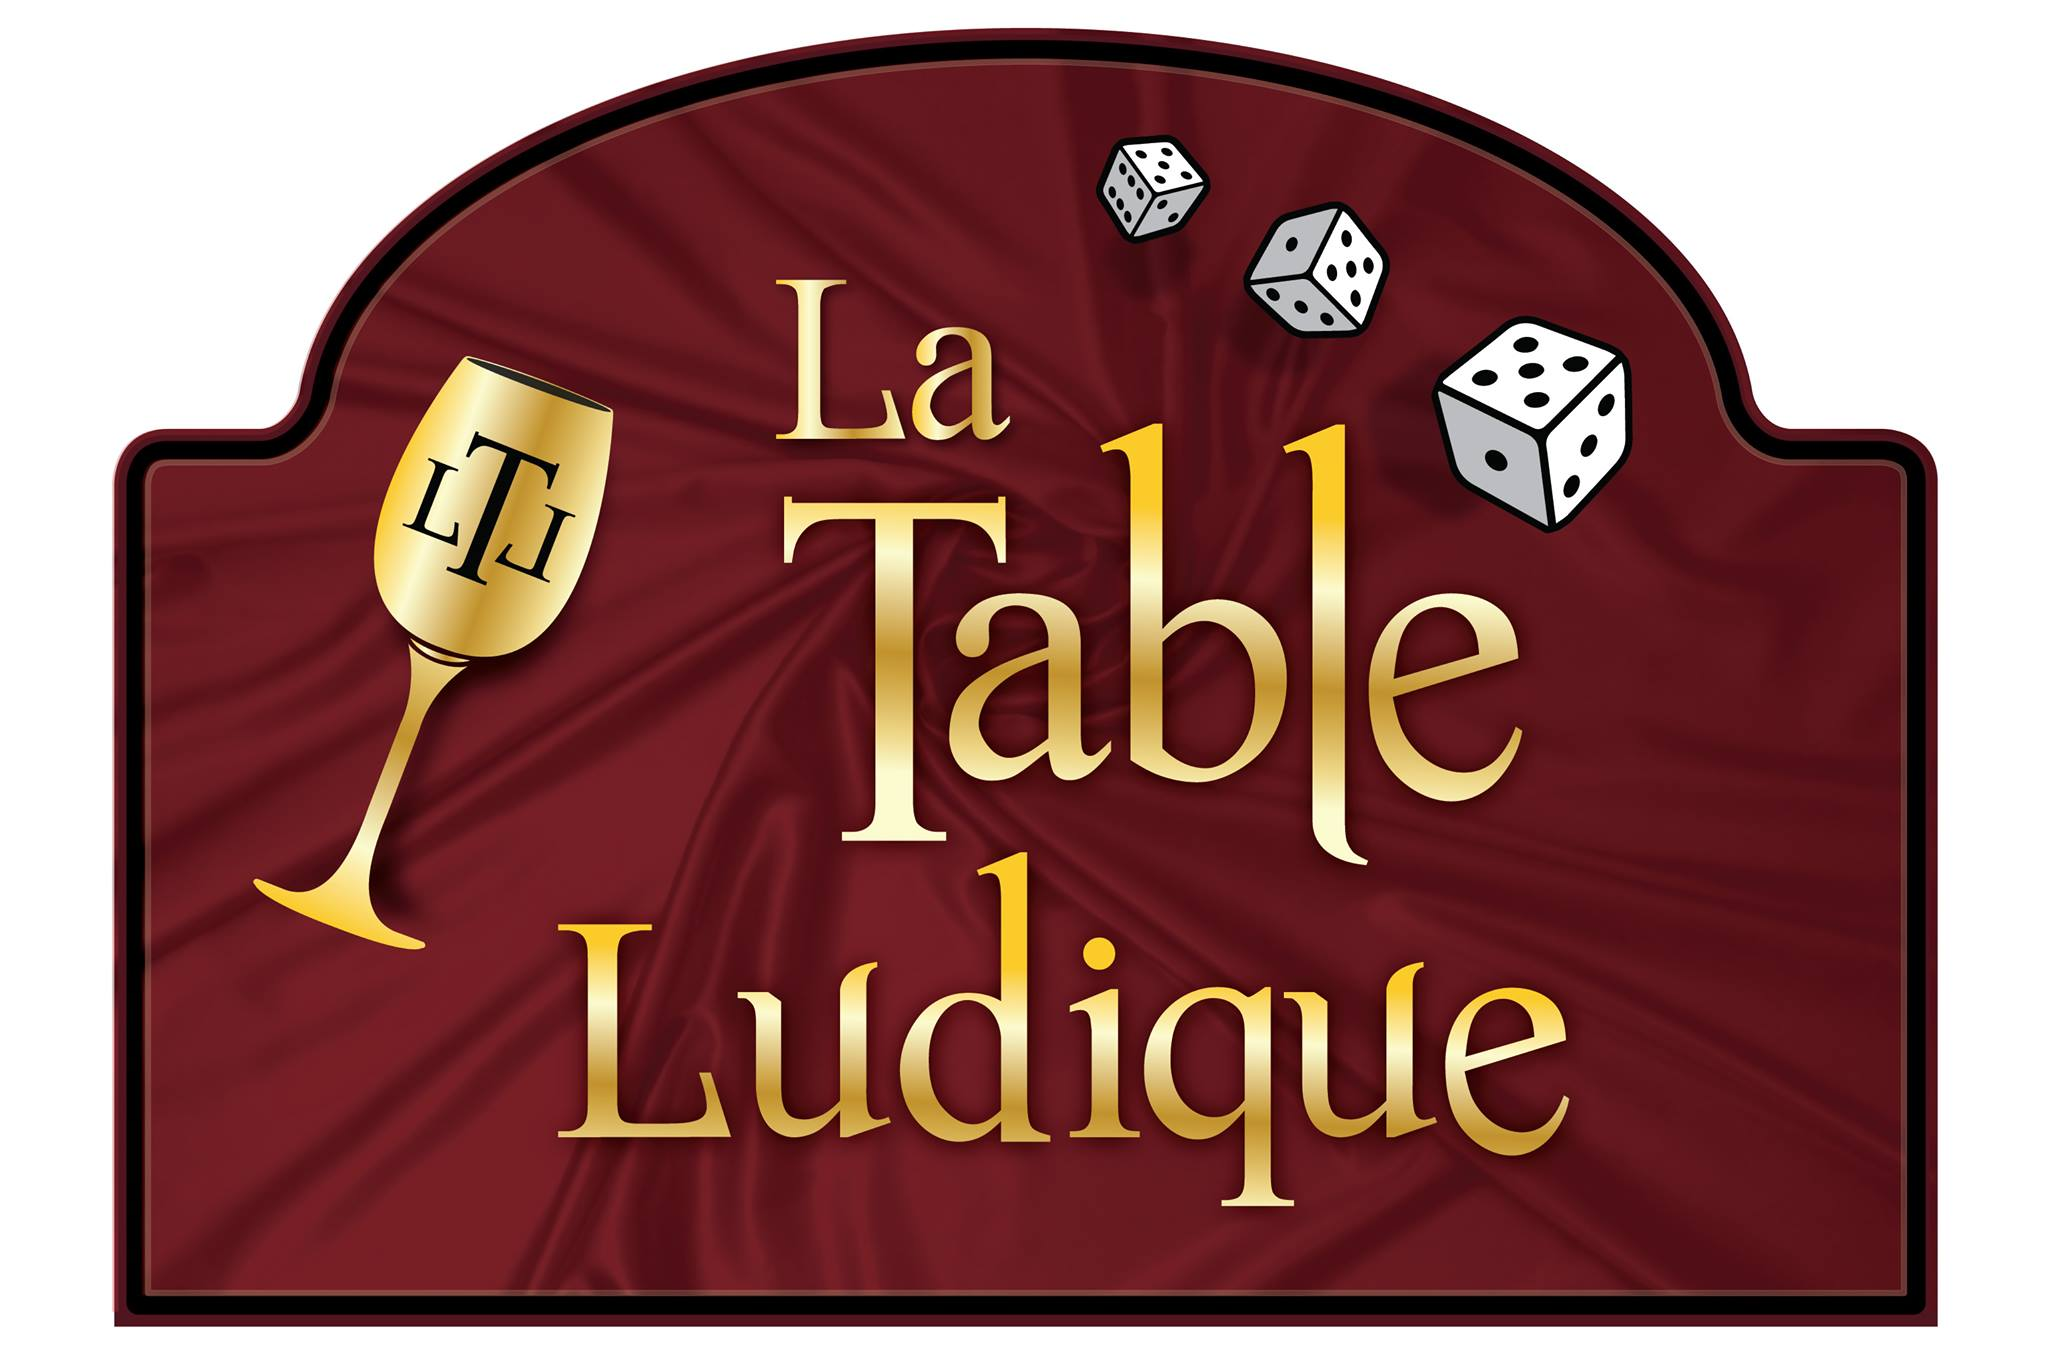 logo la table ludique 2